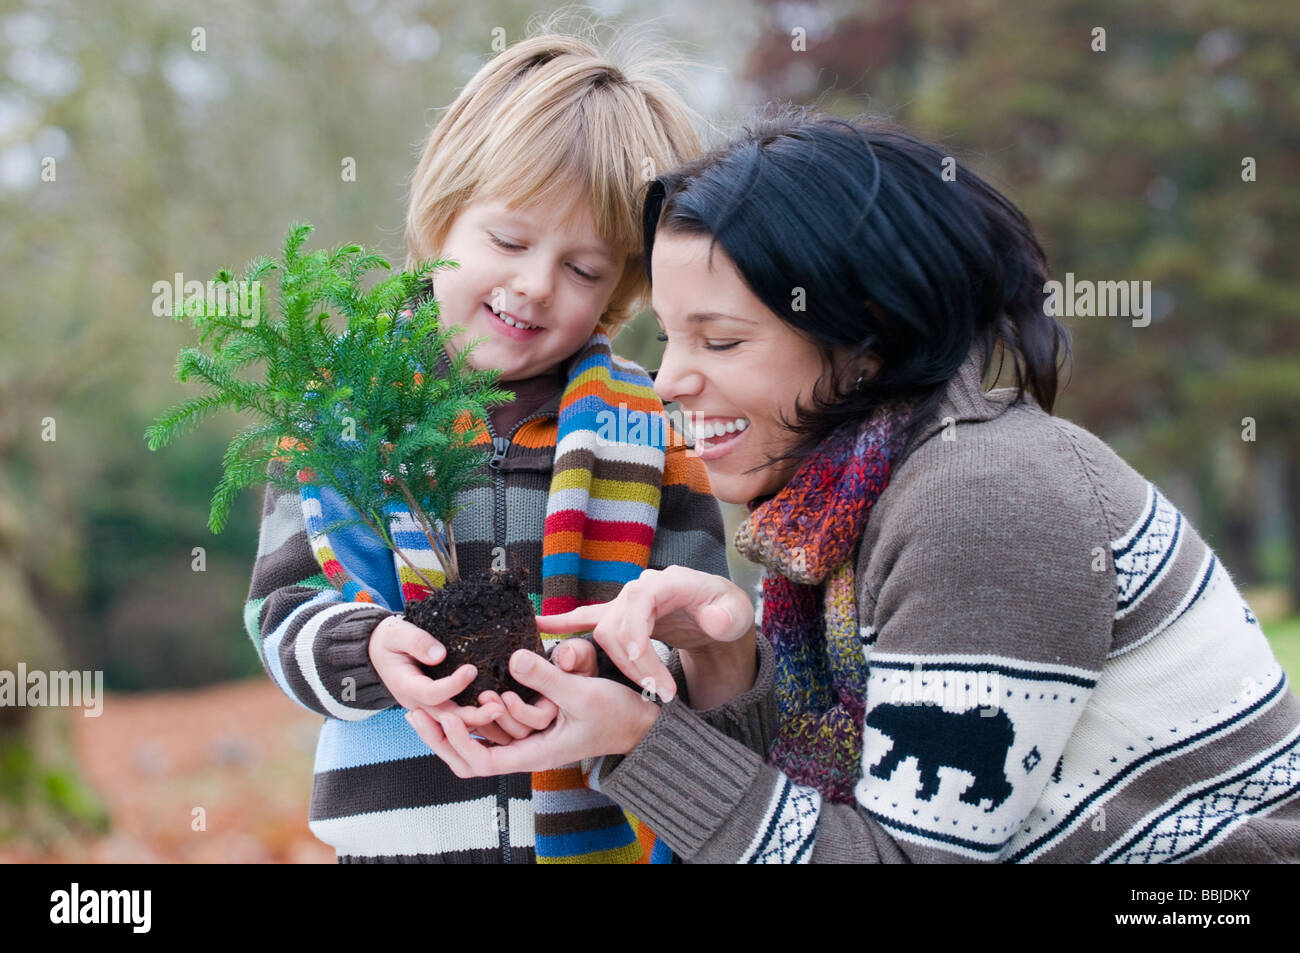 Mother and young boy holding small tree ready to plant, Vancouver, British Columbia Stock Photo